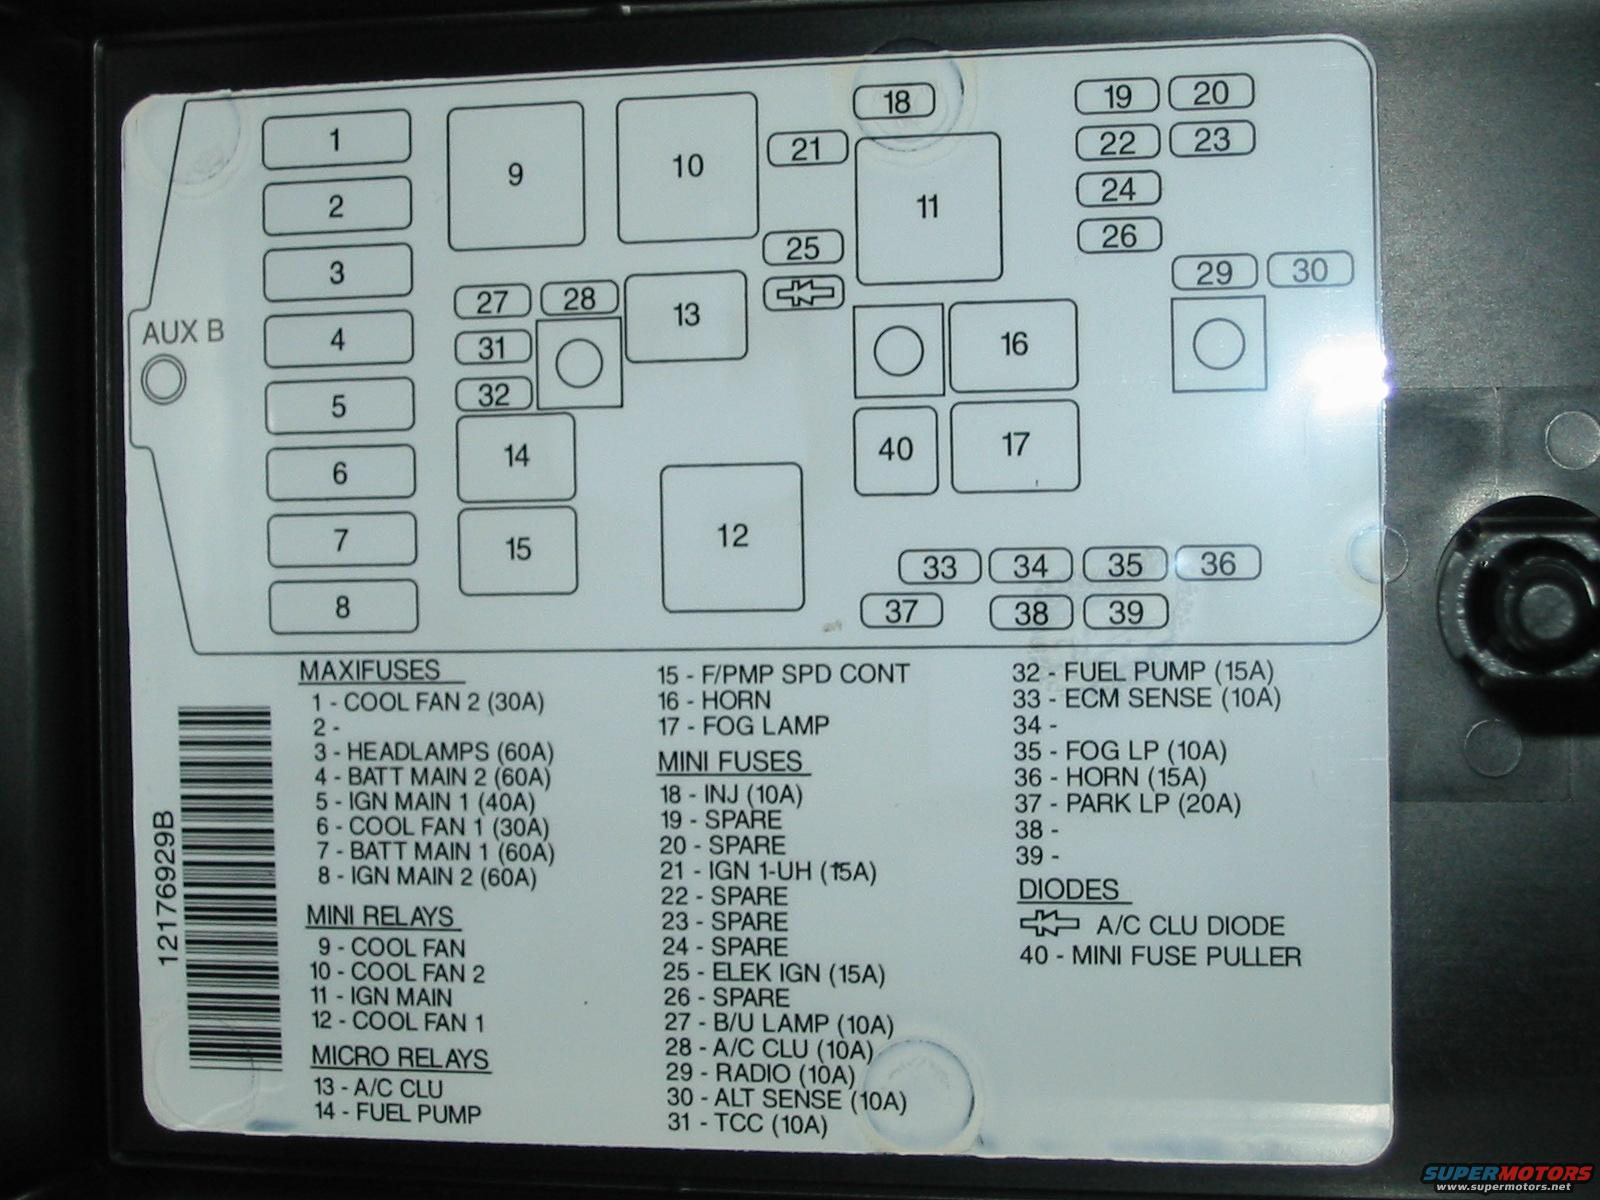 hight resolution of blower motor 98 grand prix blower motor resistorblower fuse and relay diagram 2002 rav 4 fuse and relay diagram for 2002 accord